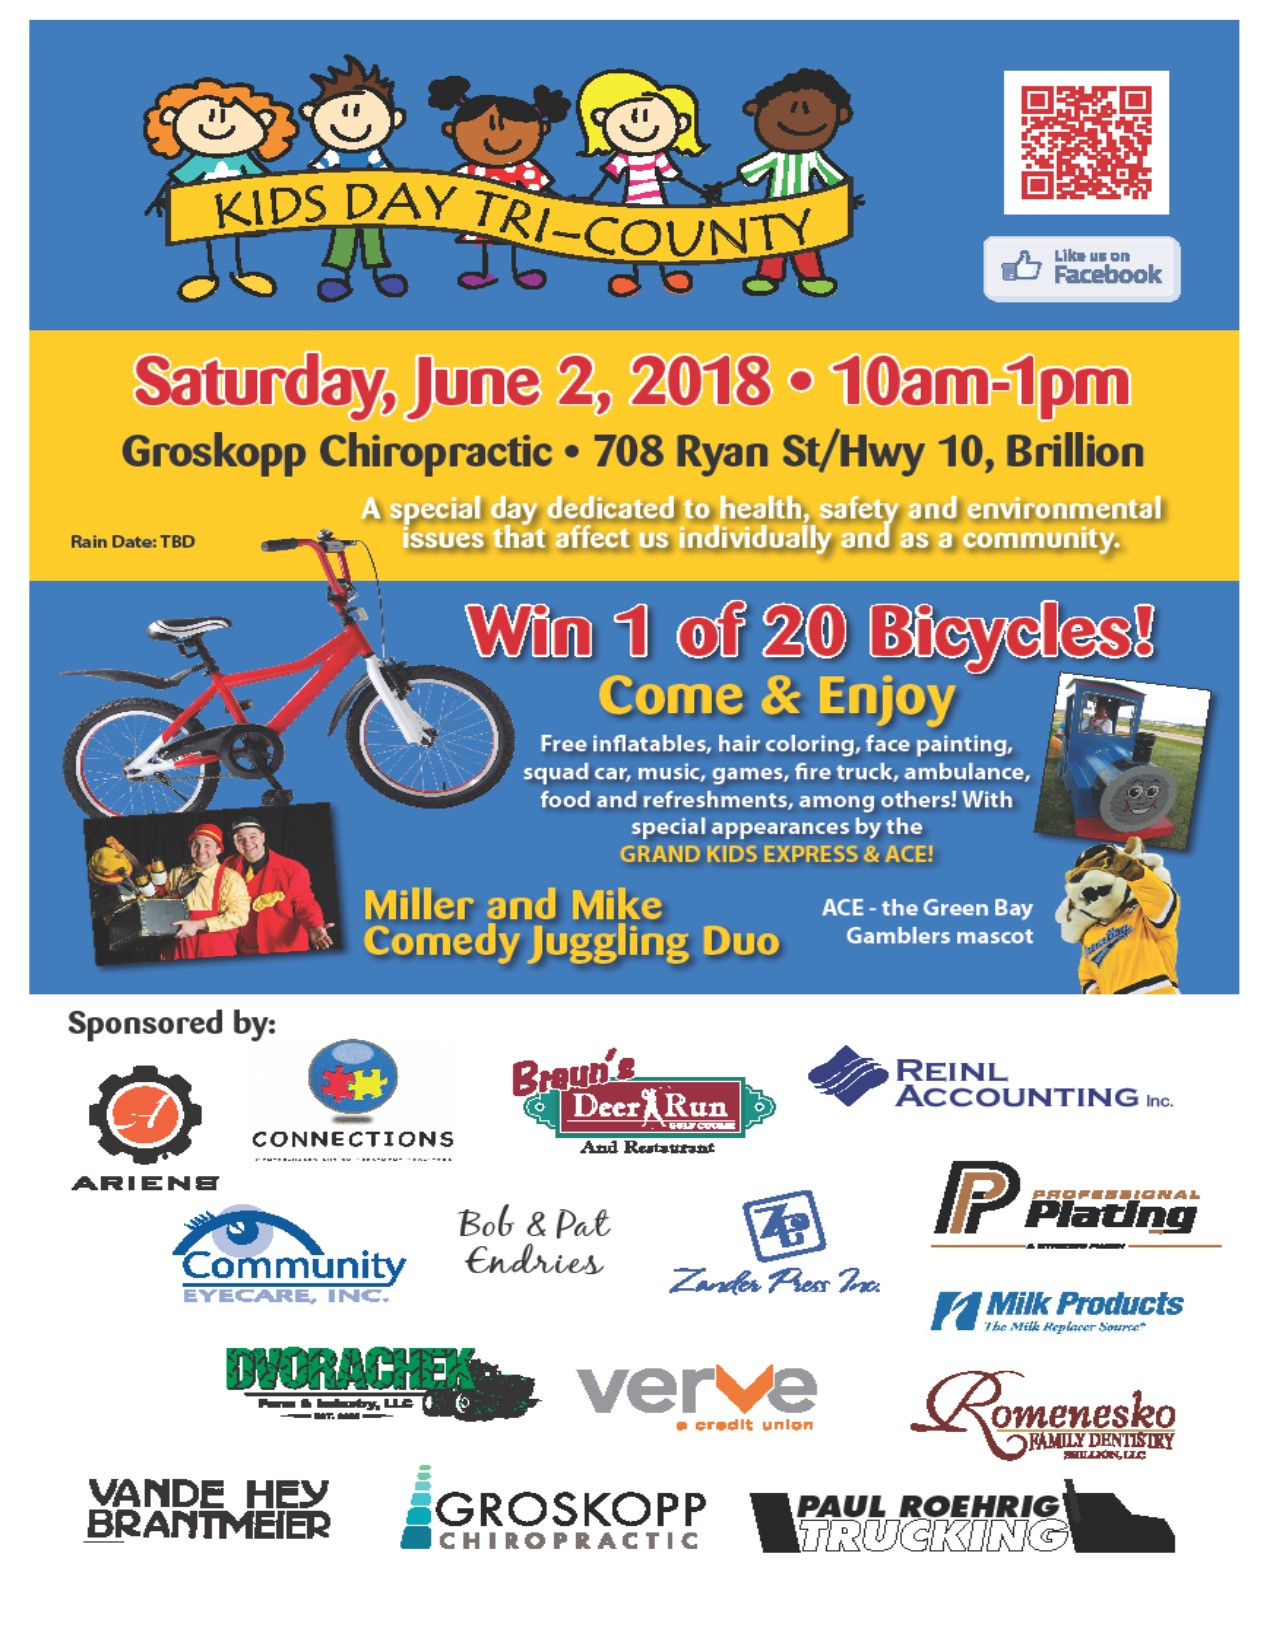 Saturday June 2nd...5th Annual Kids day Tri County